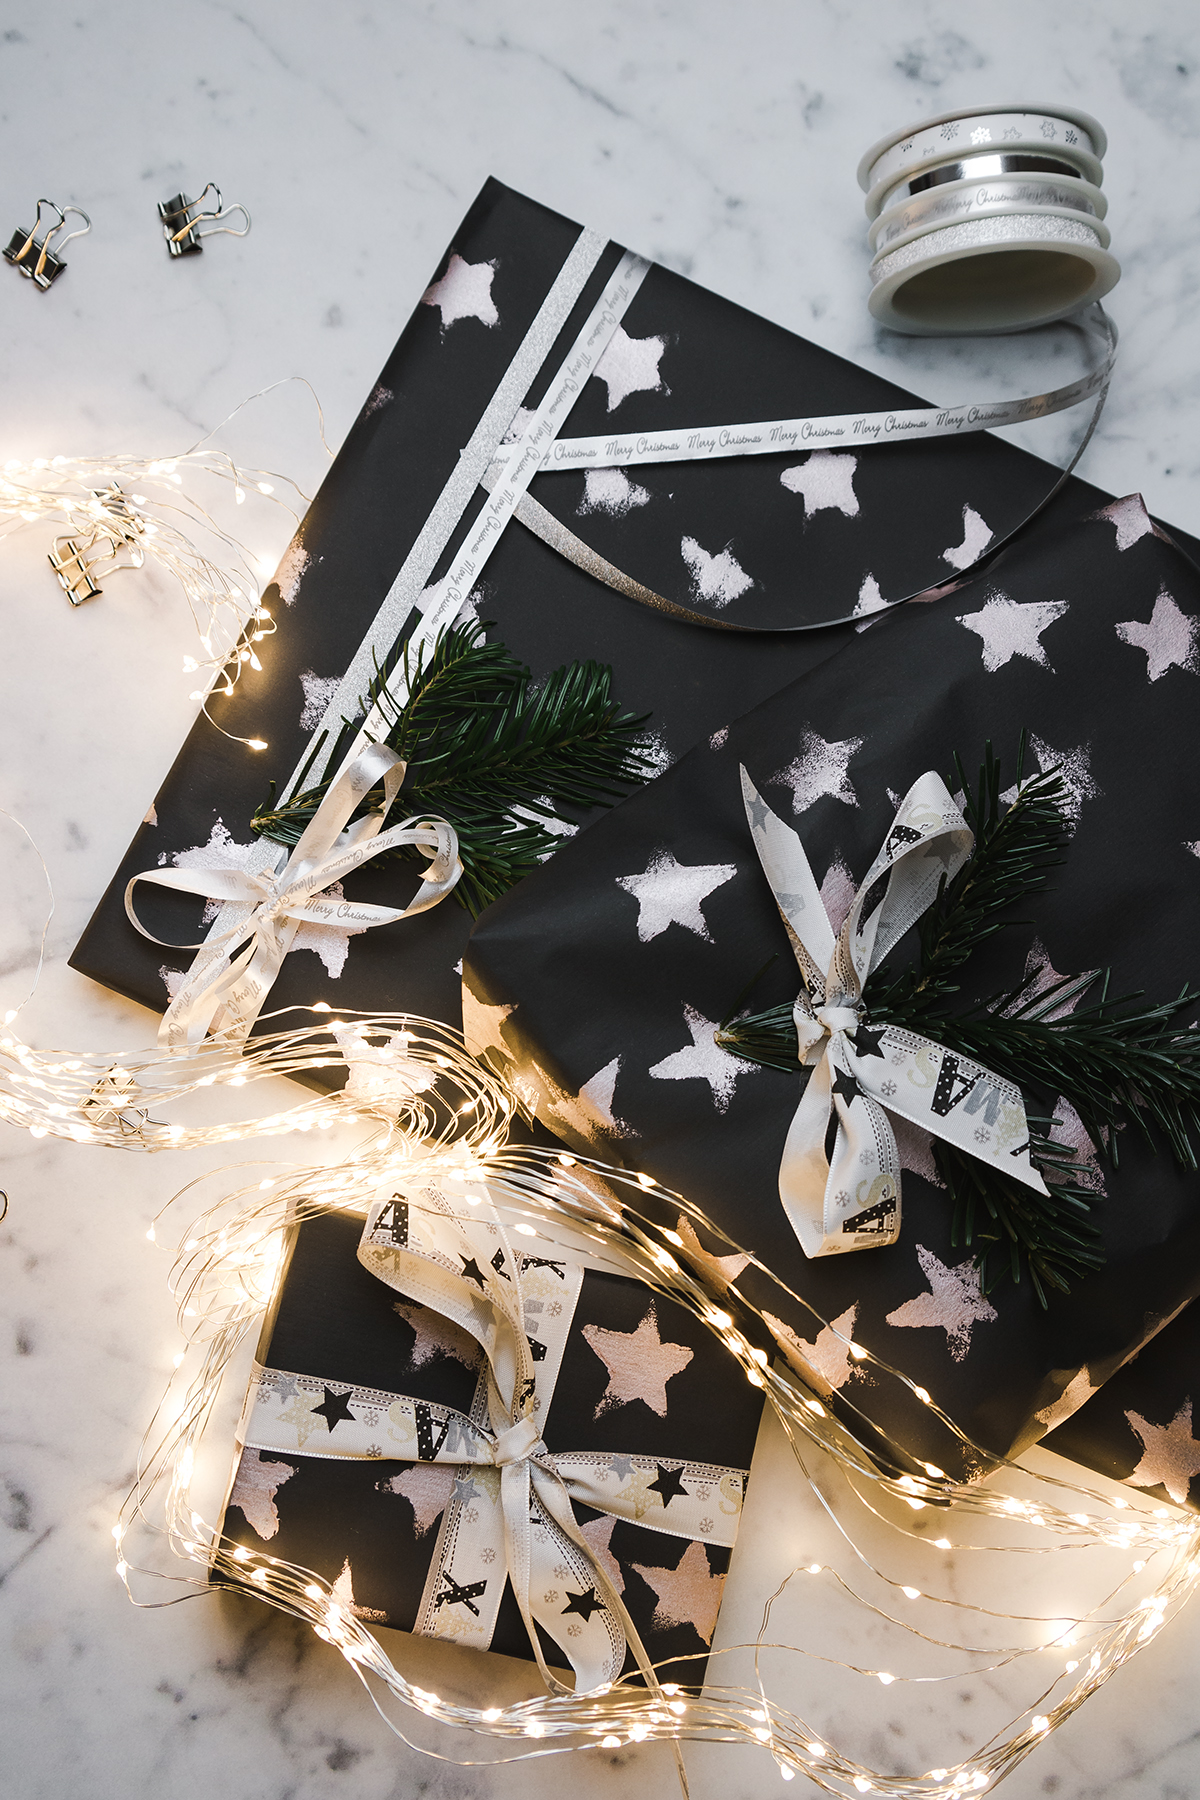 Geschenkpapier selbst bedrucken { Create yourself a merry little christmas }